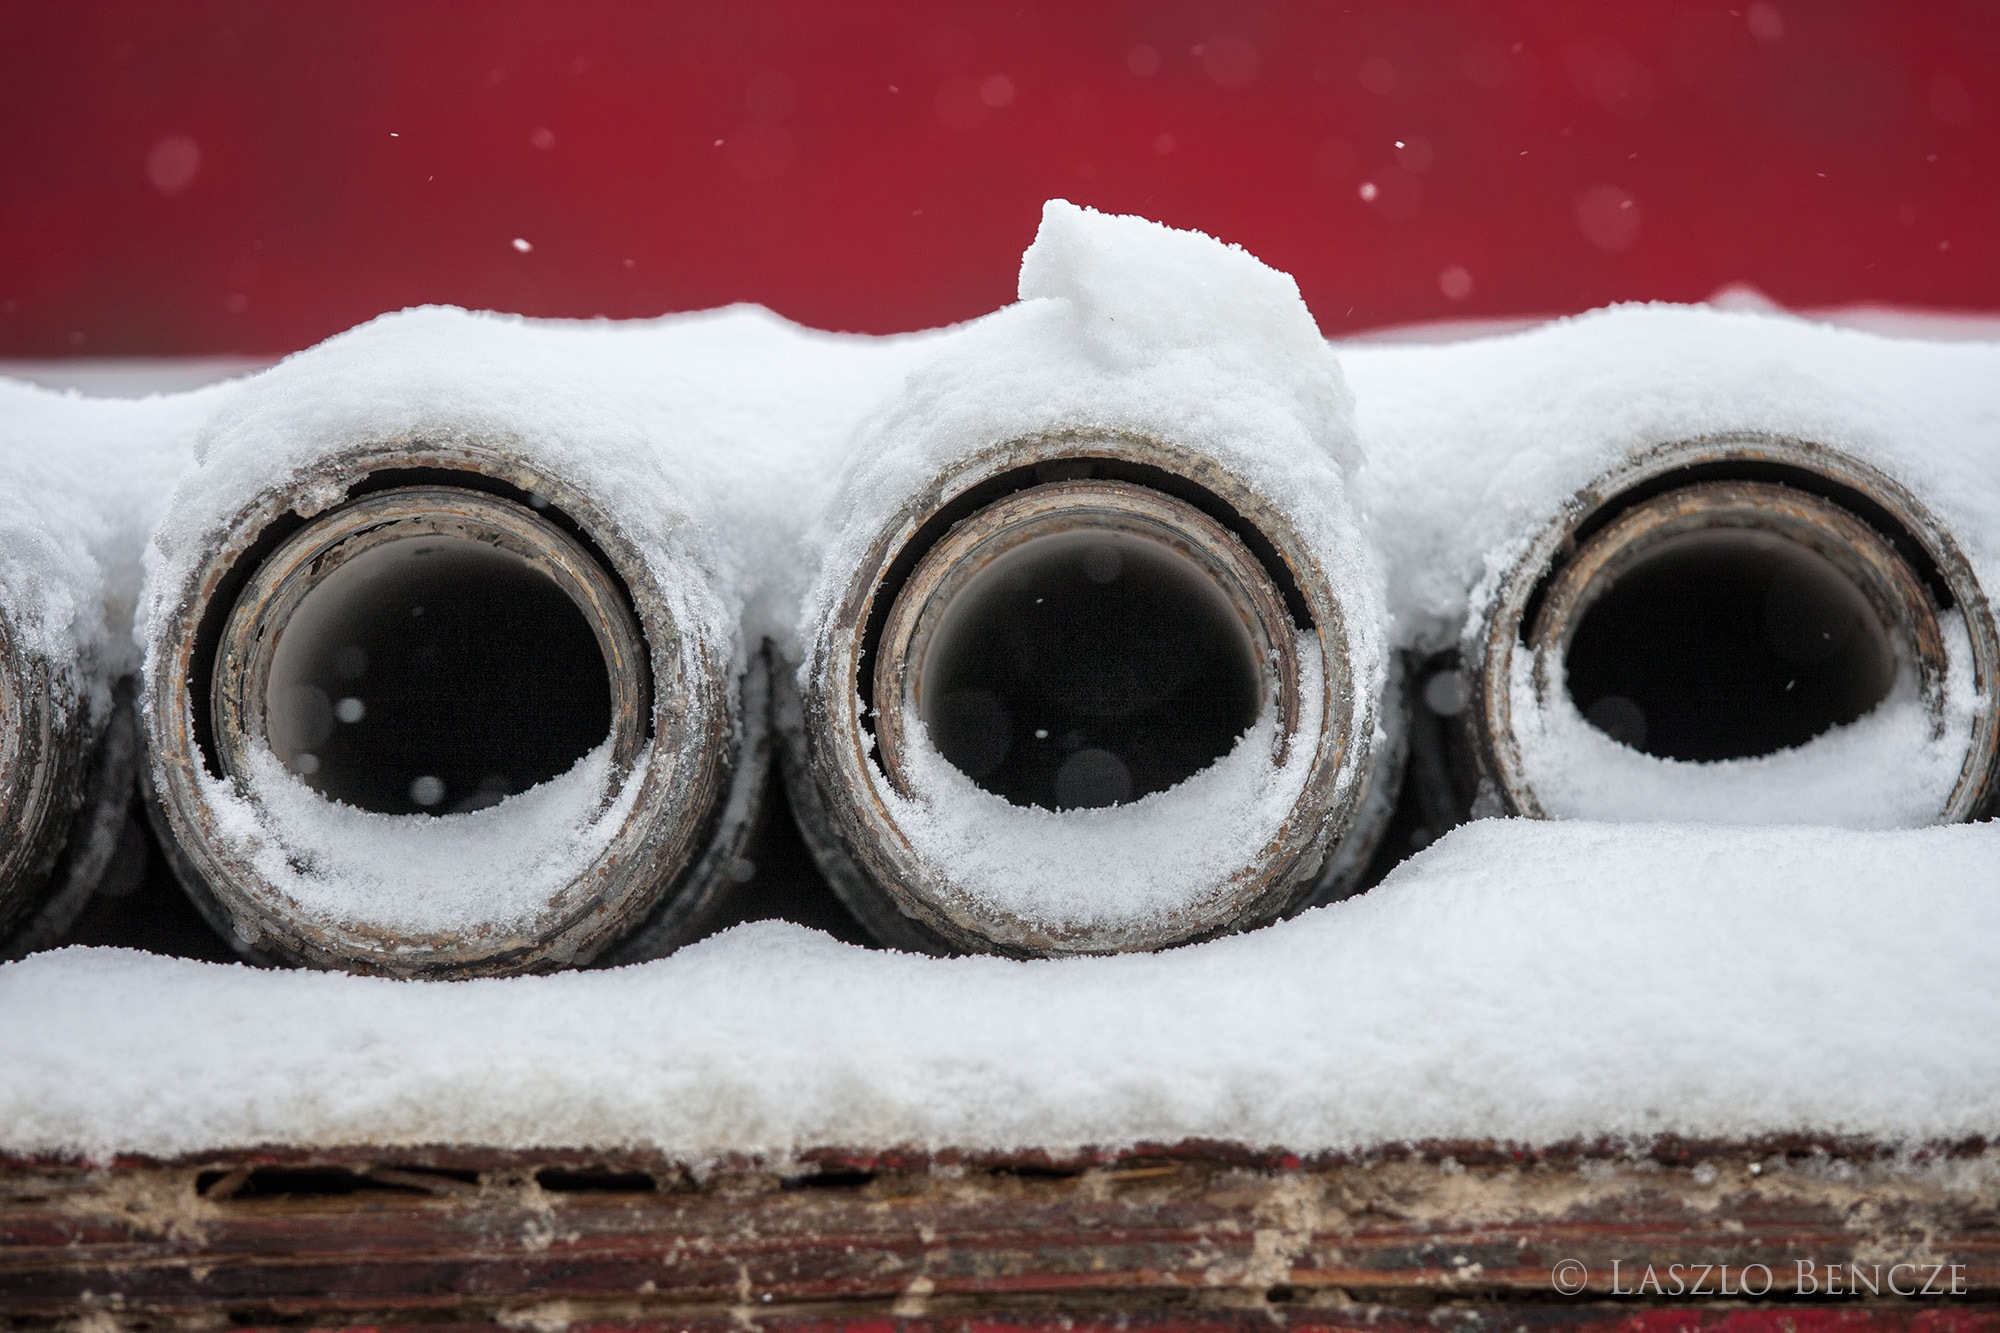 Drill Pipe in Snow by Laszlo Bencze